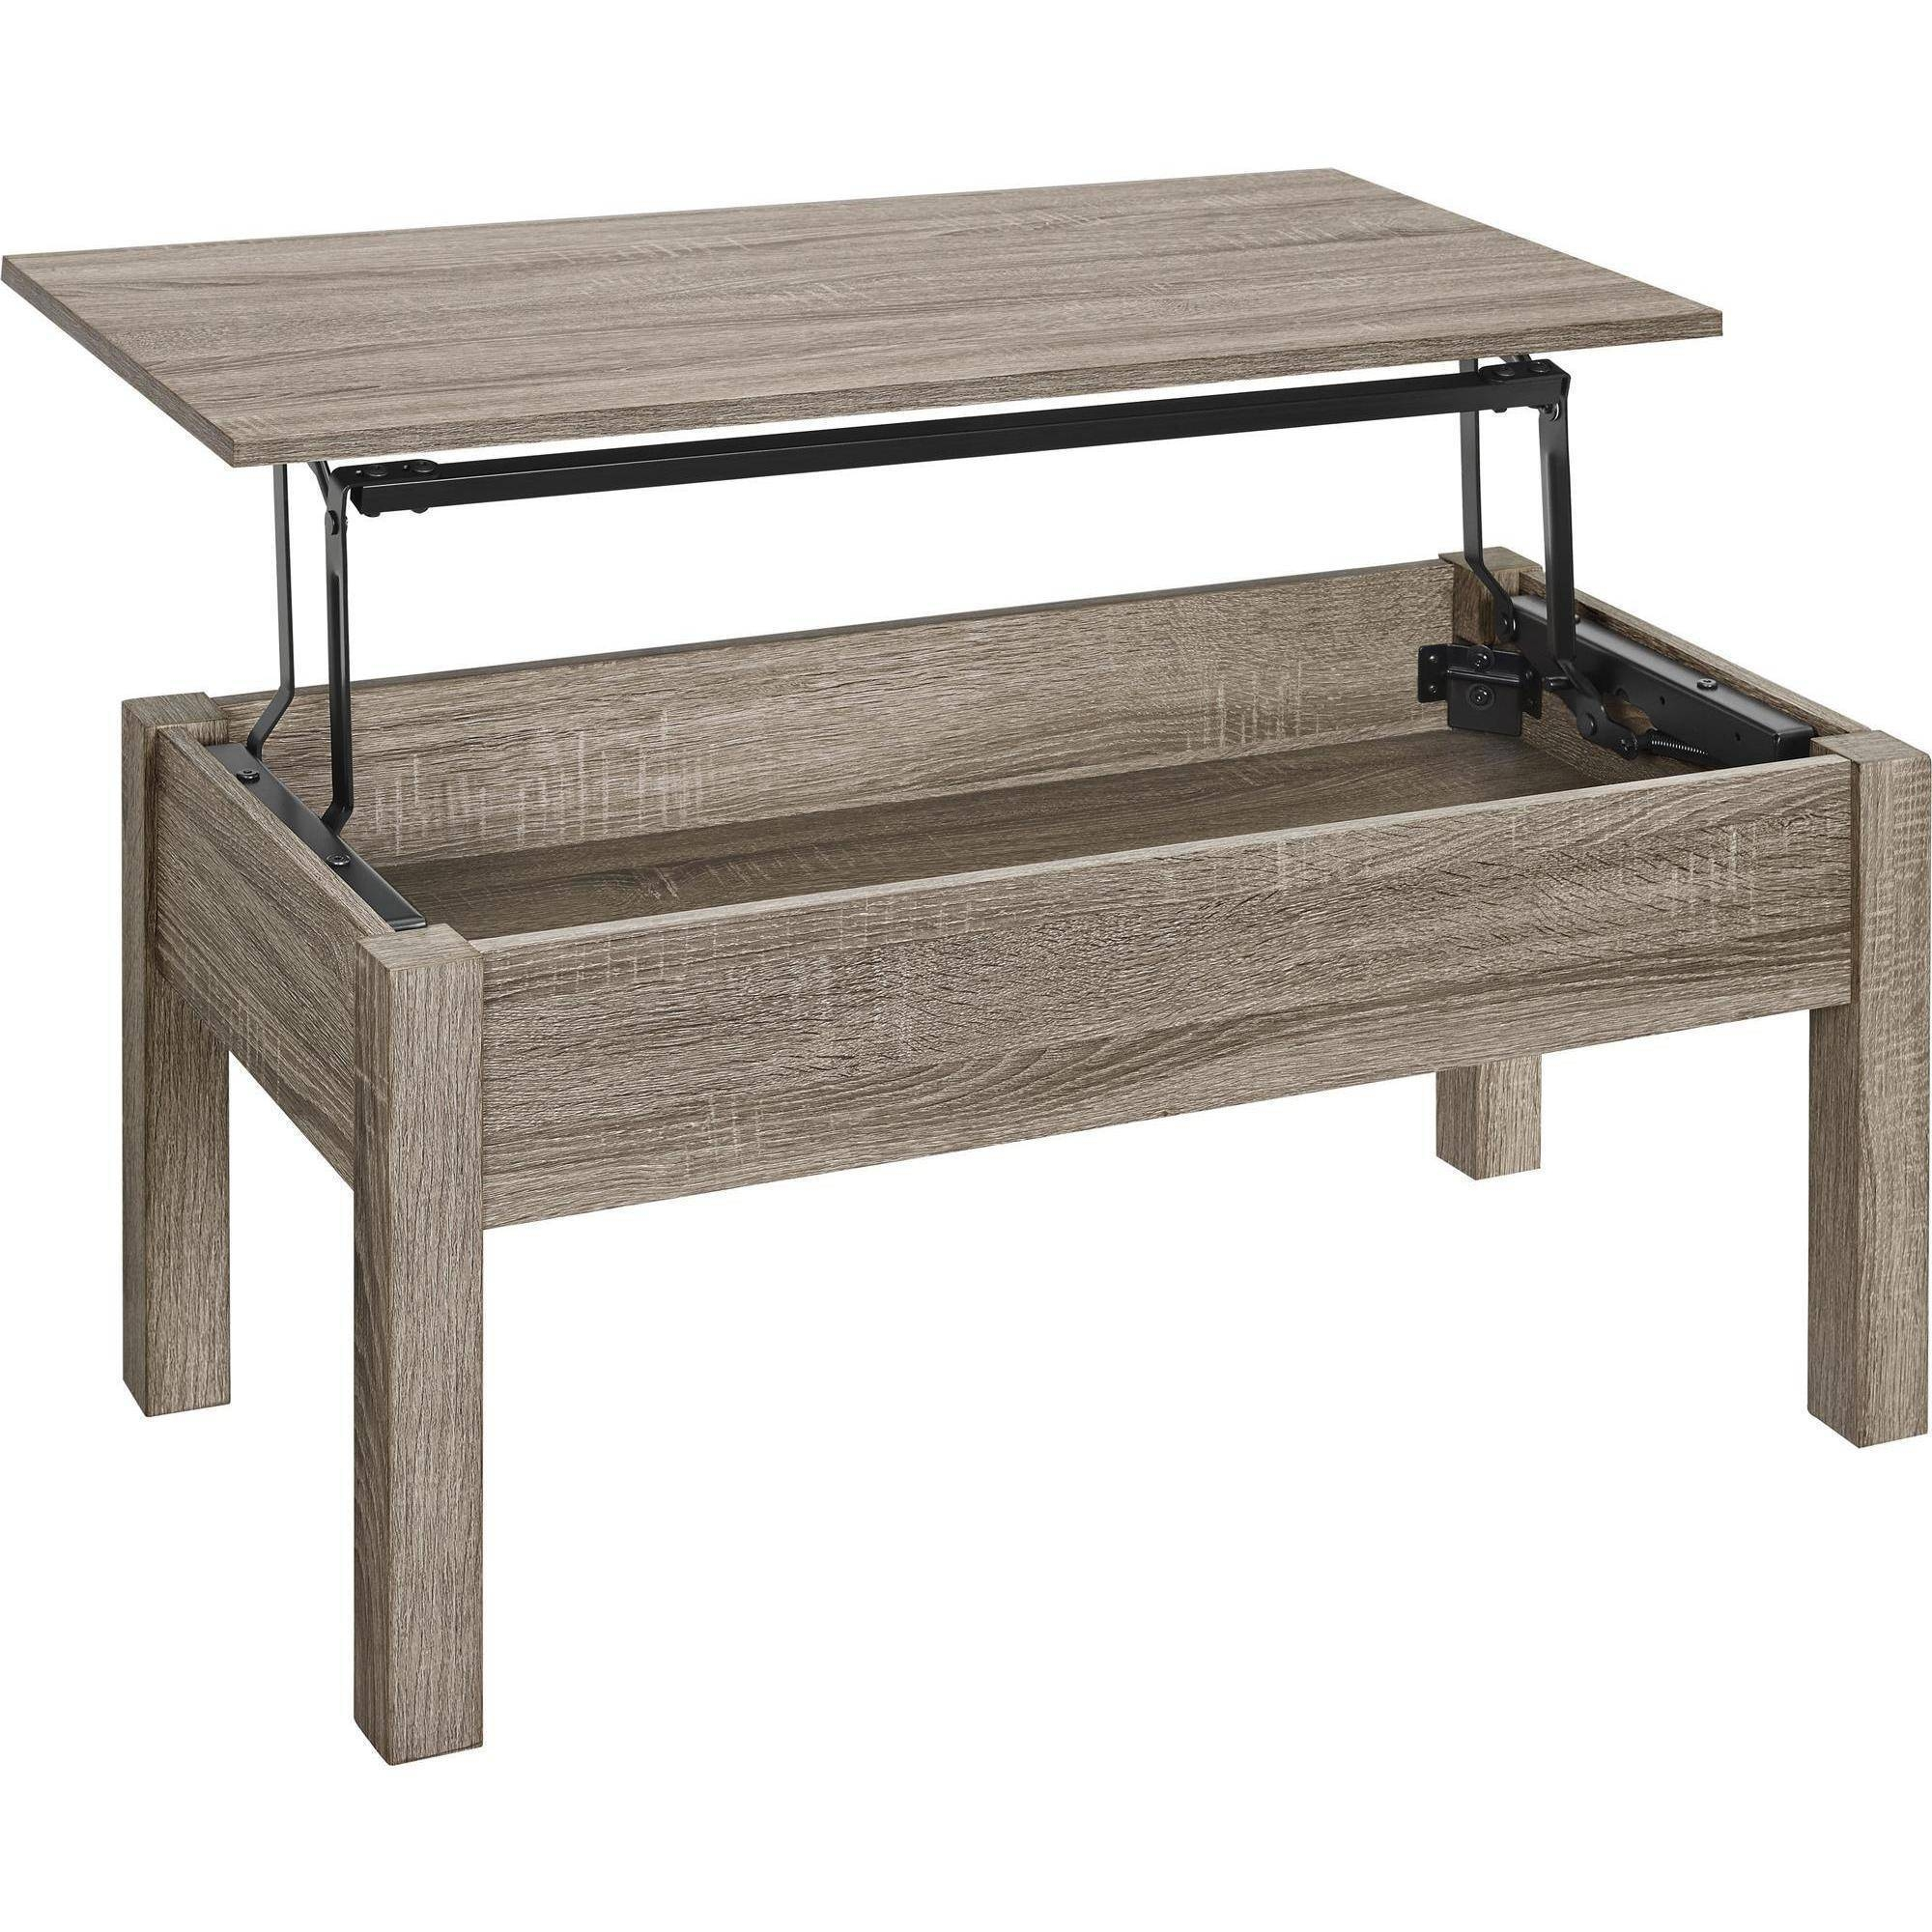 Mainstays Lift-Top Coffee Table, Multiple Colors - Walmart within Elevating Coffee Tables (Image 25 of 30)